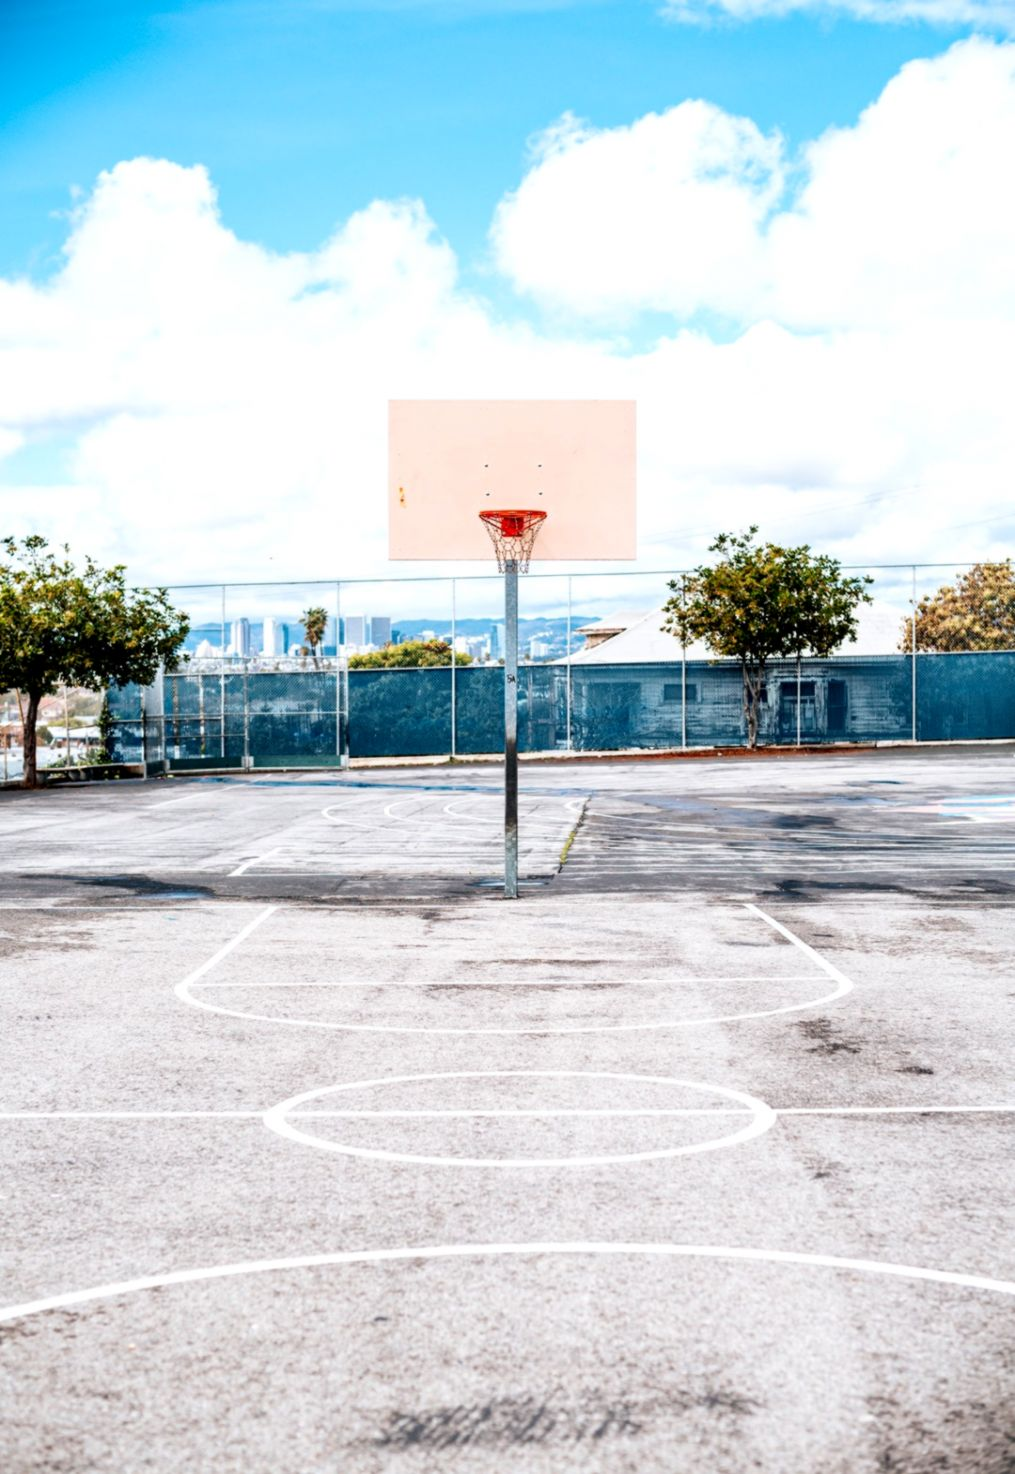 Basketball Court Wallpaper Like Wallpapers